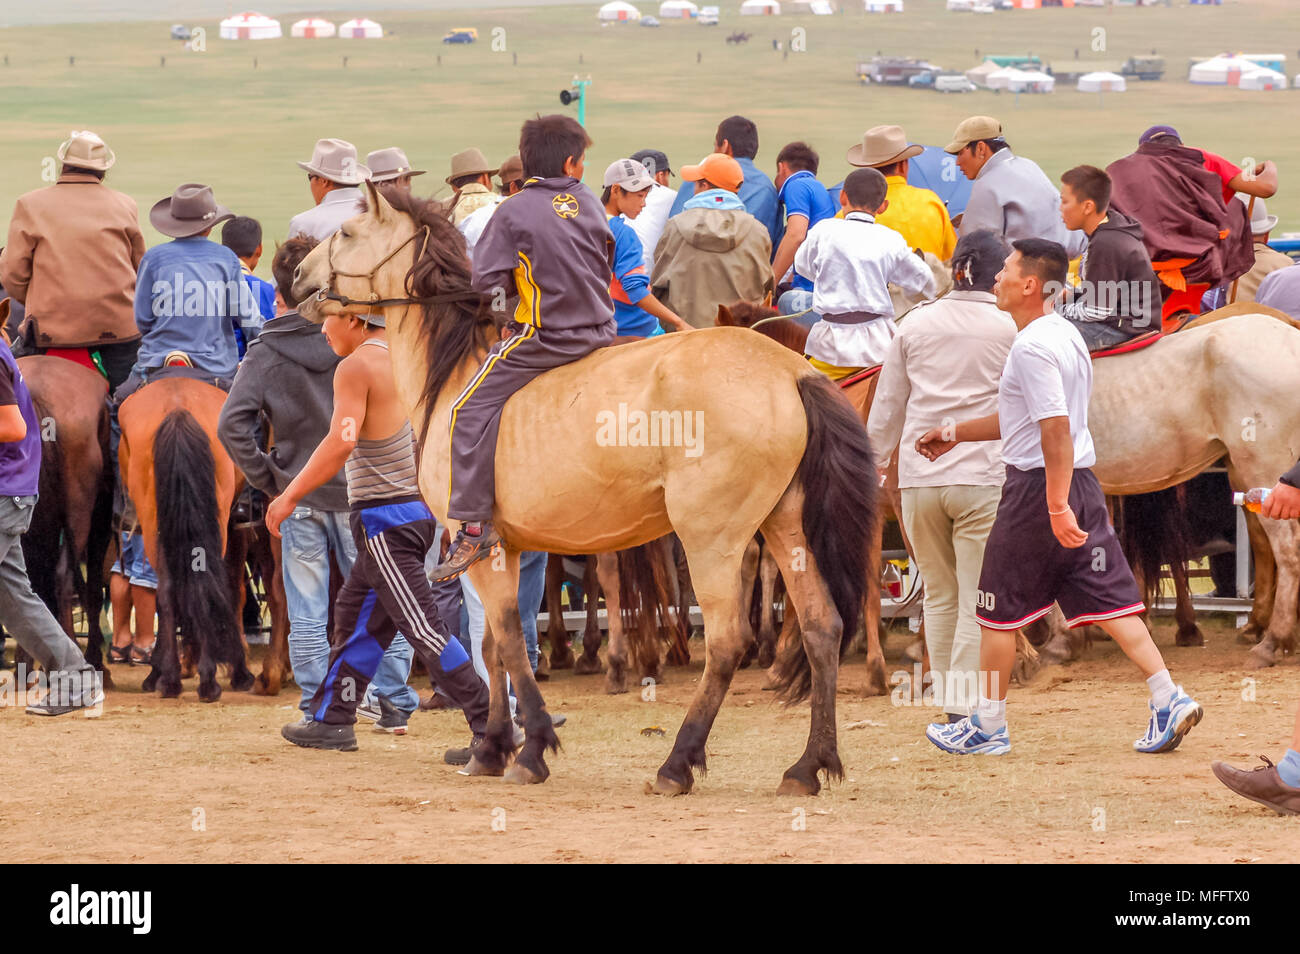 Khui Doloon Khudag, Mongolia - July 12, 2010: Horsemen at Nadaam horse race on steppe outside the capital Ulaanbaatar - Stock Image